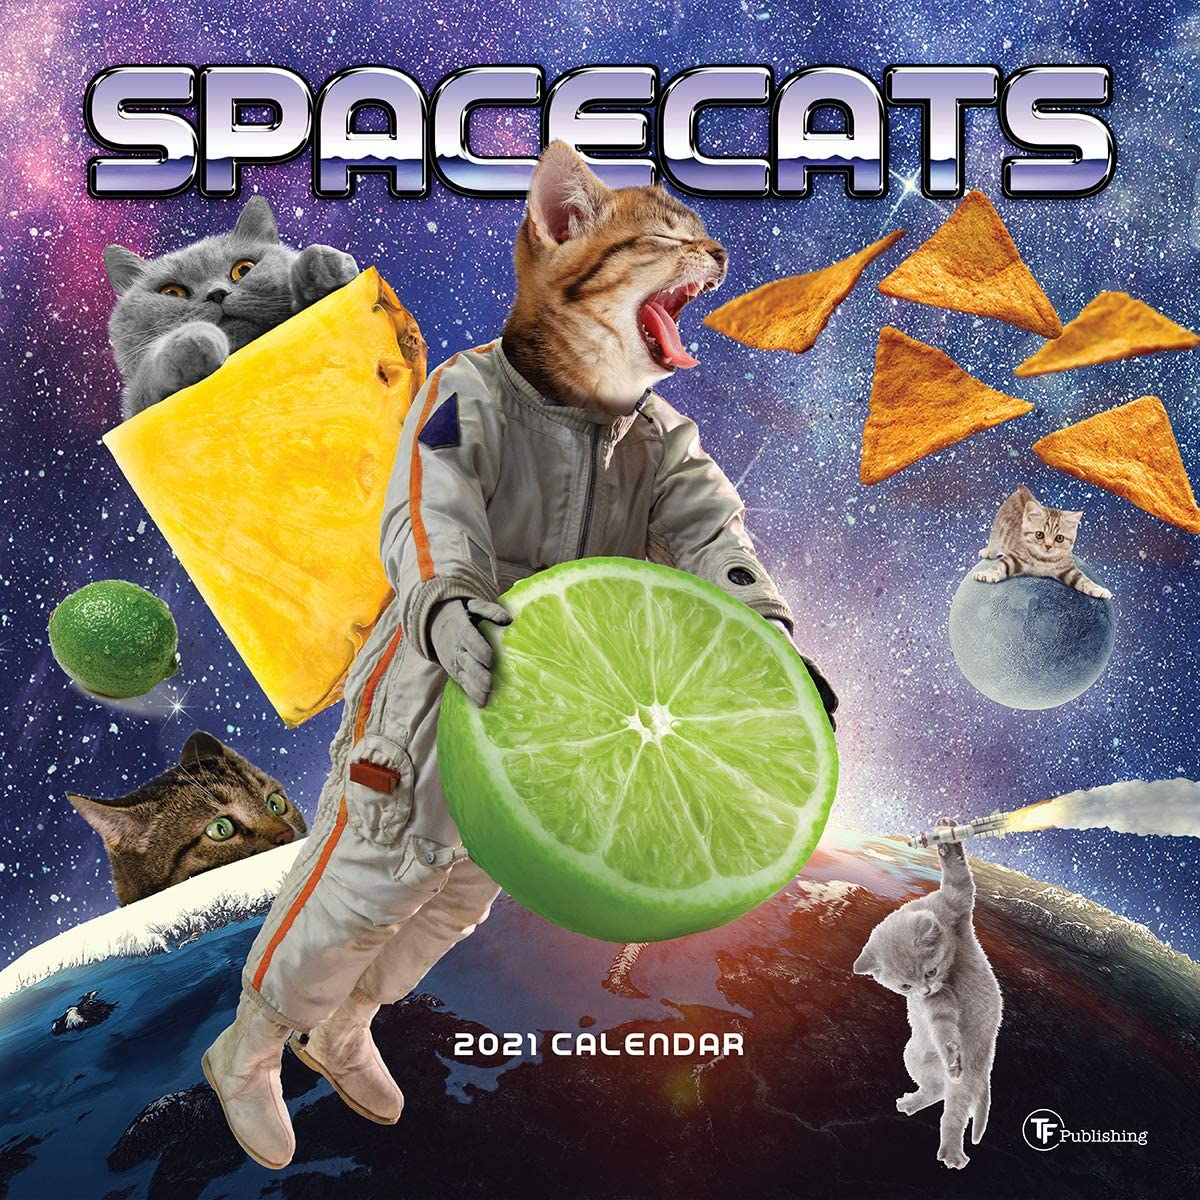 TF Publishing, 2021 Space Cats Wall Calendar